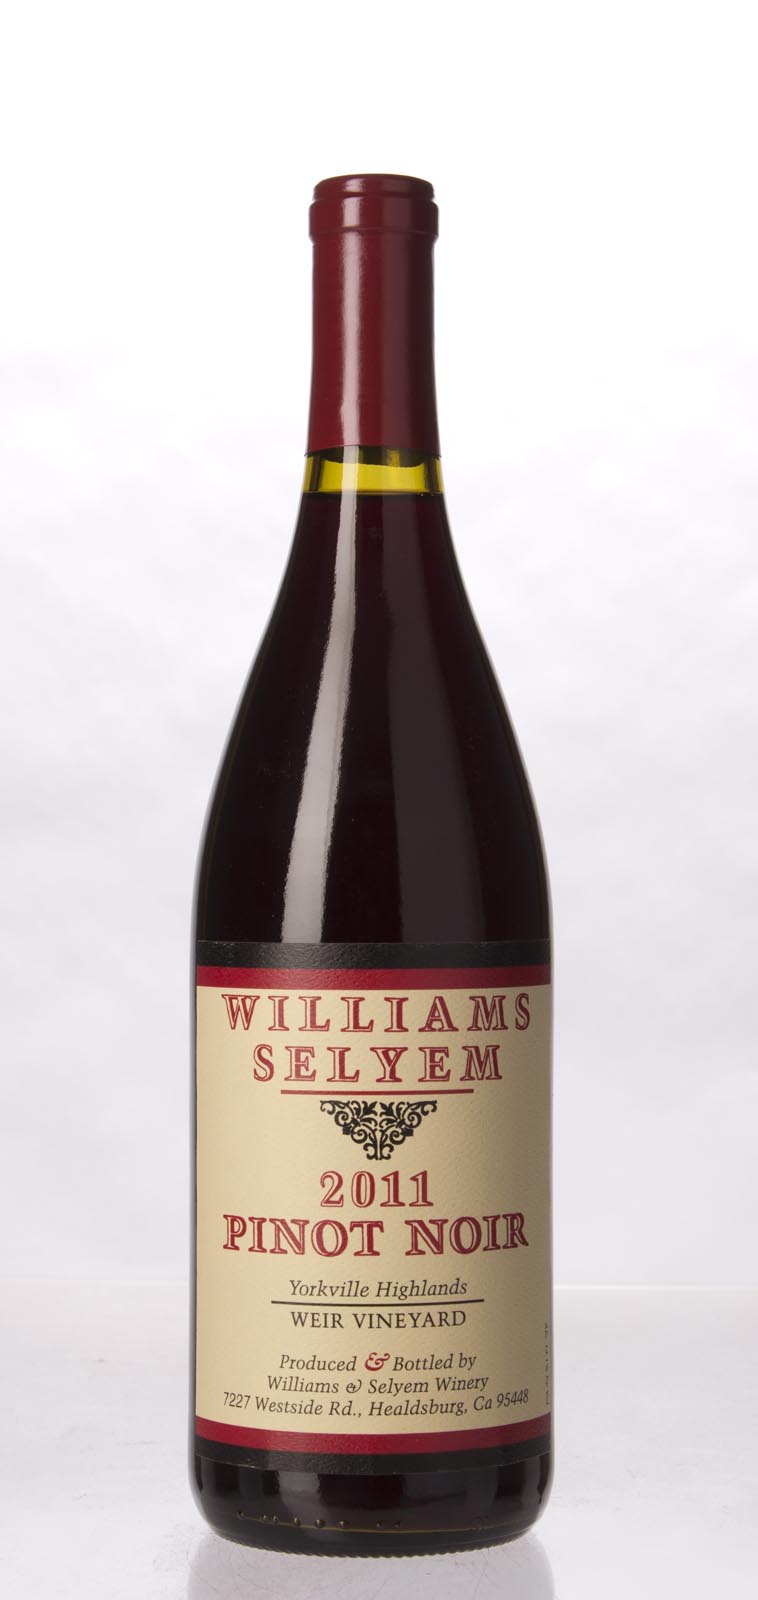 Williams Selyem Pinot Noir Weir Vineyard 2011, 750ml (ST92) from The BPW - Merchants of rare and fine wines.